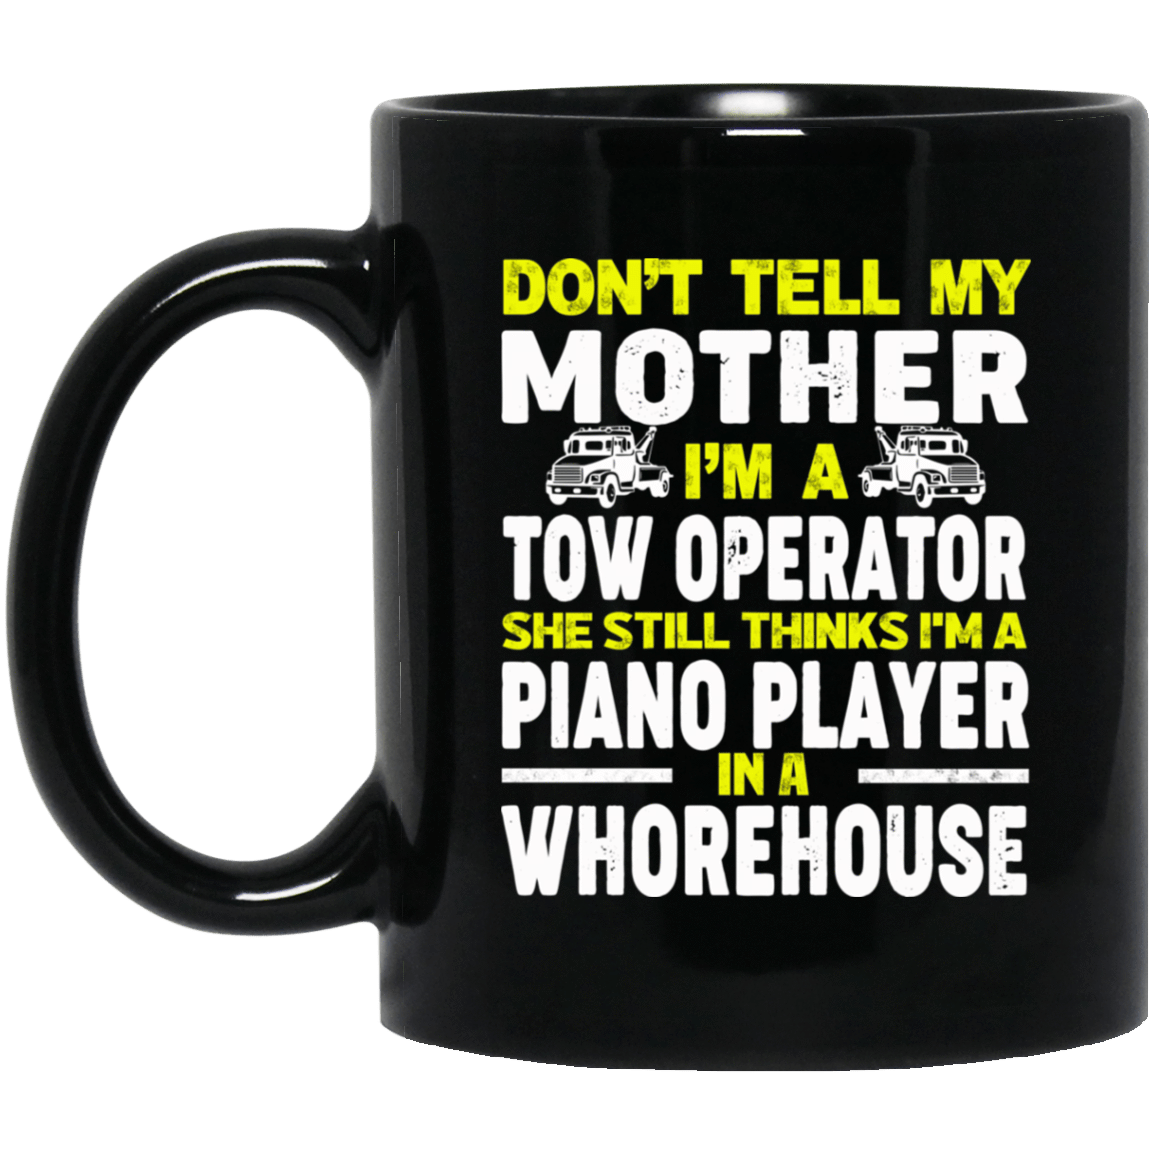 Don't Tell My Mother I'm A Tow Operator She Still Thinks I'm A Piano Player In A Whorehouse Mug 1065-10181-74095369-49307 - Tee Ript